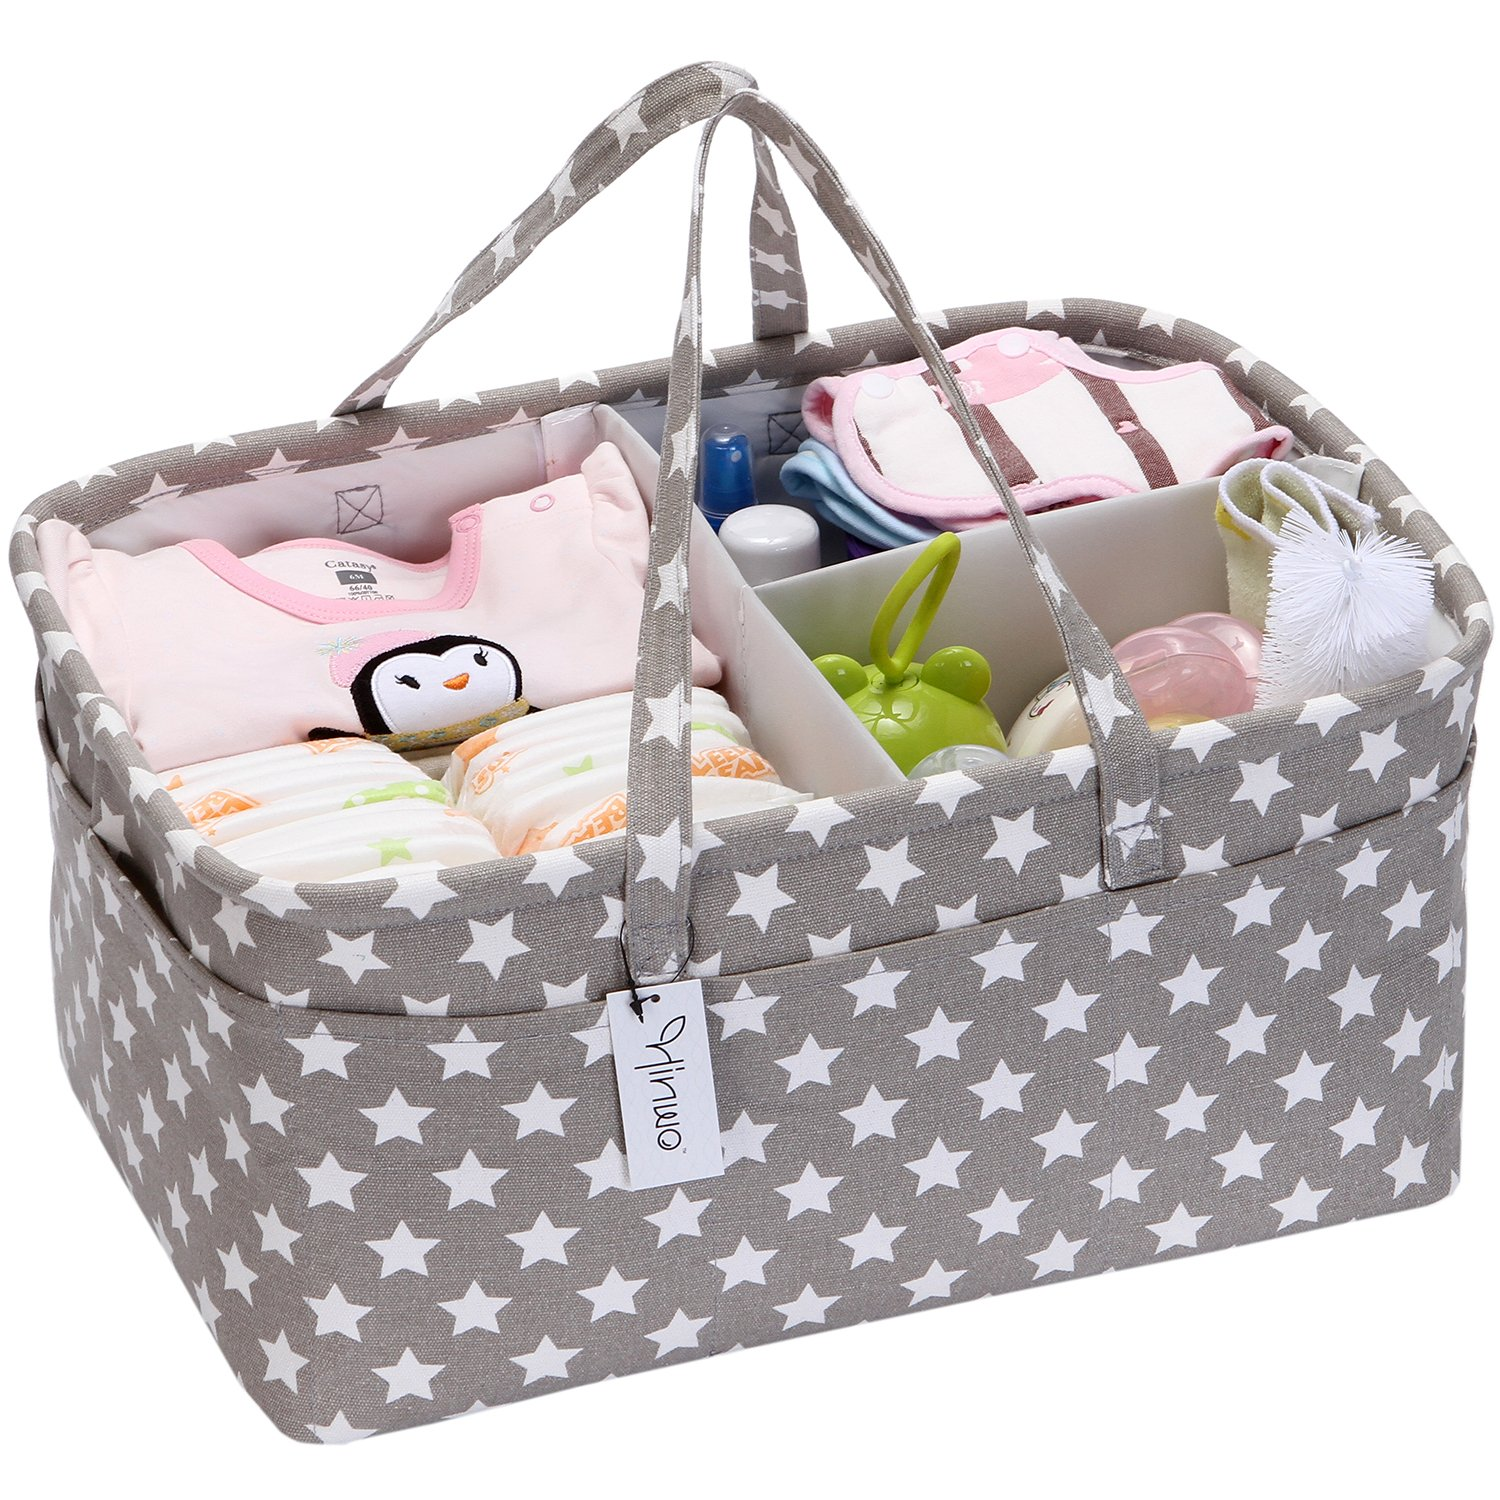 Hinwo Baby Diaper Caddy 3-Compartment Infant Nursery Tote Storage Bin Portable Car Organizer Newborn Shower Gift Basket with Detachable Divider and 10 Invisible Pockets for Diapers & Wipes, Grey Star HWSB0002GREY